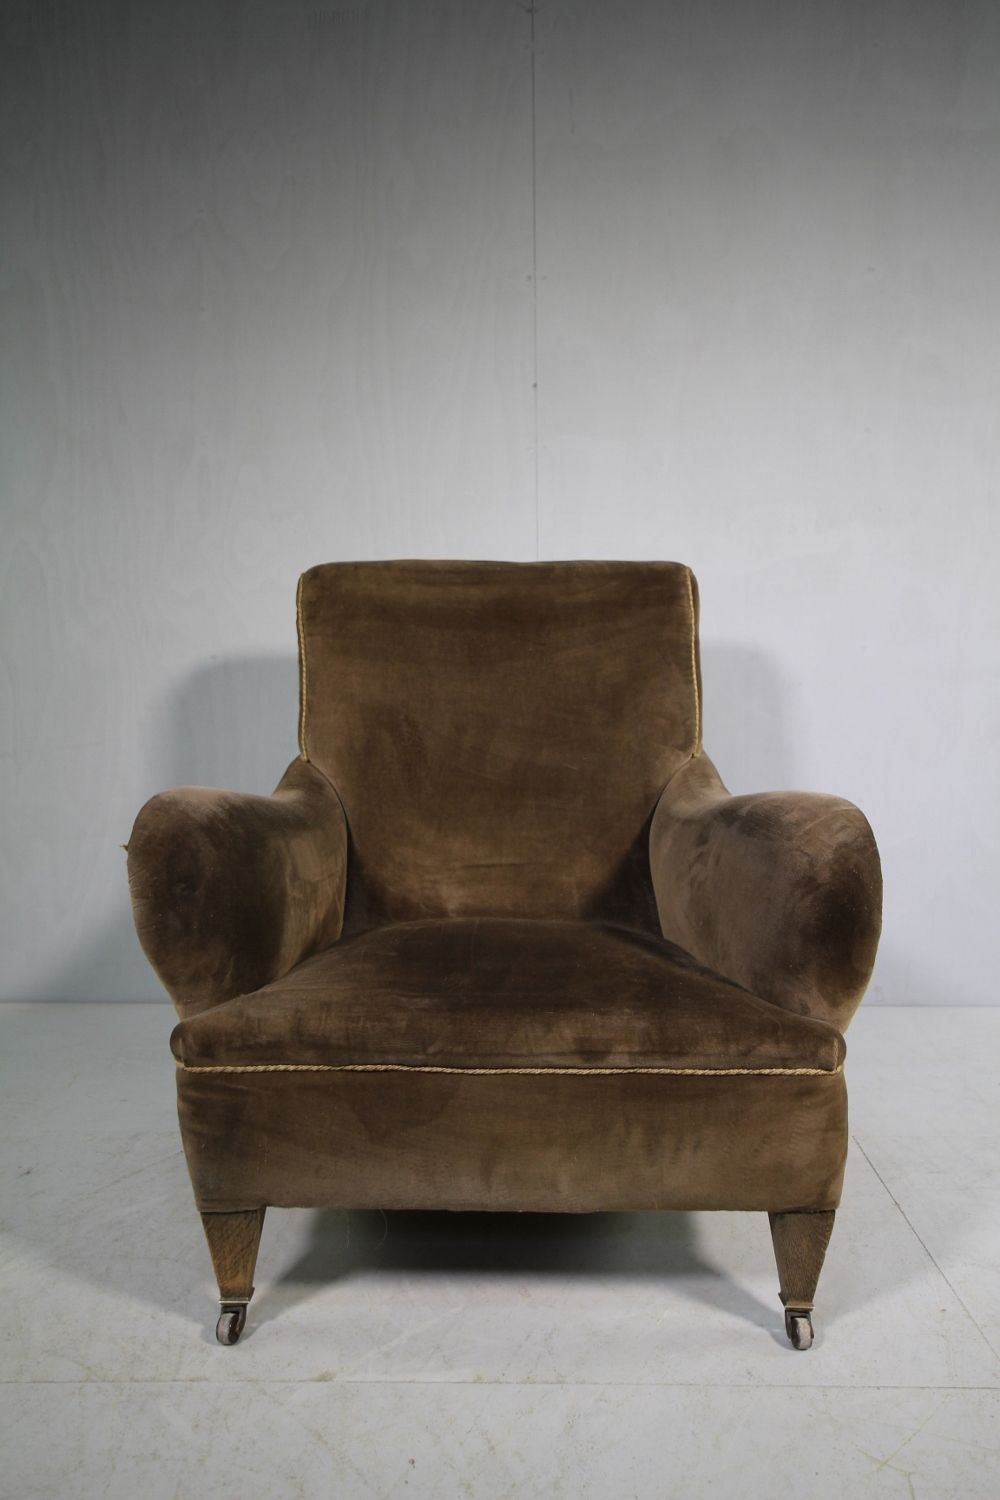 Shapely English Antique Upholstered Armchair Upholstered Arm